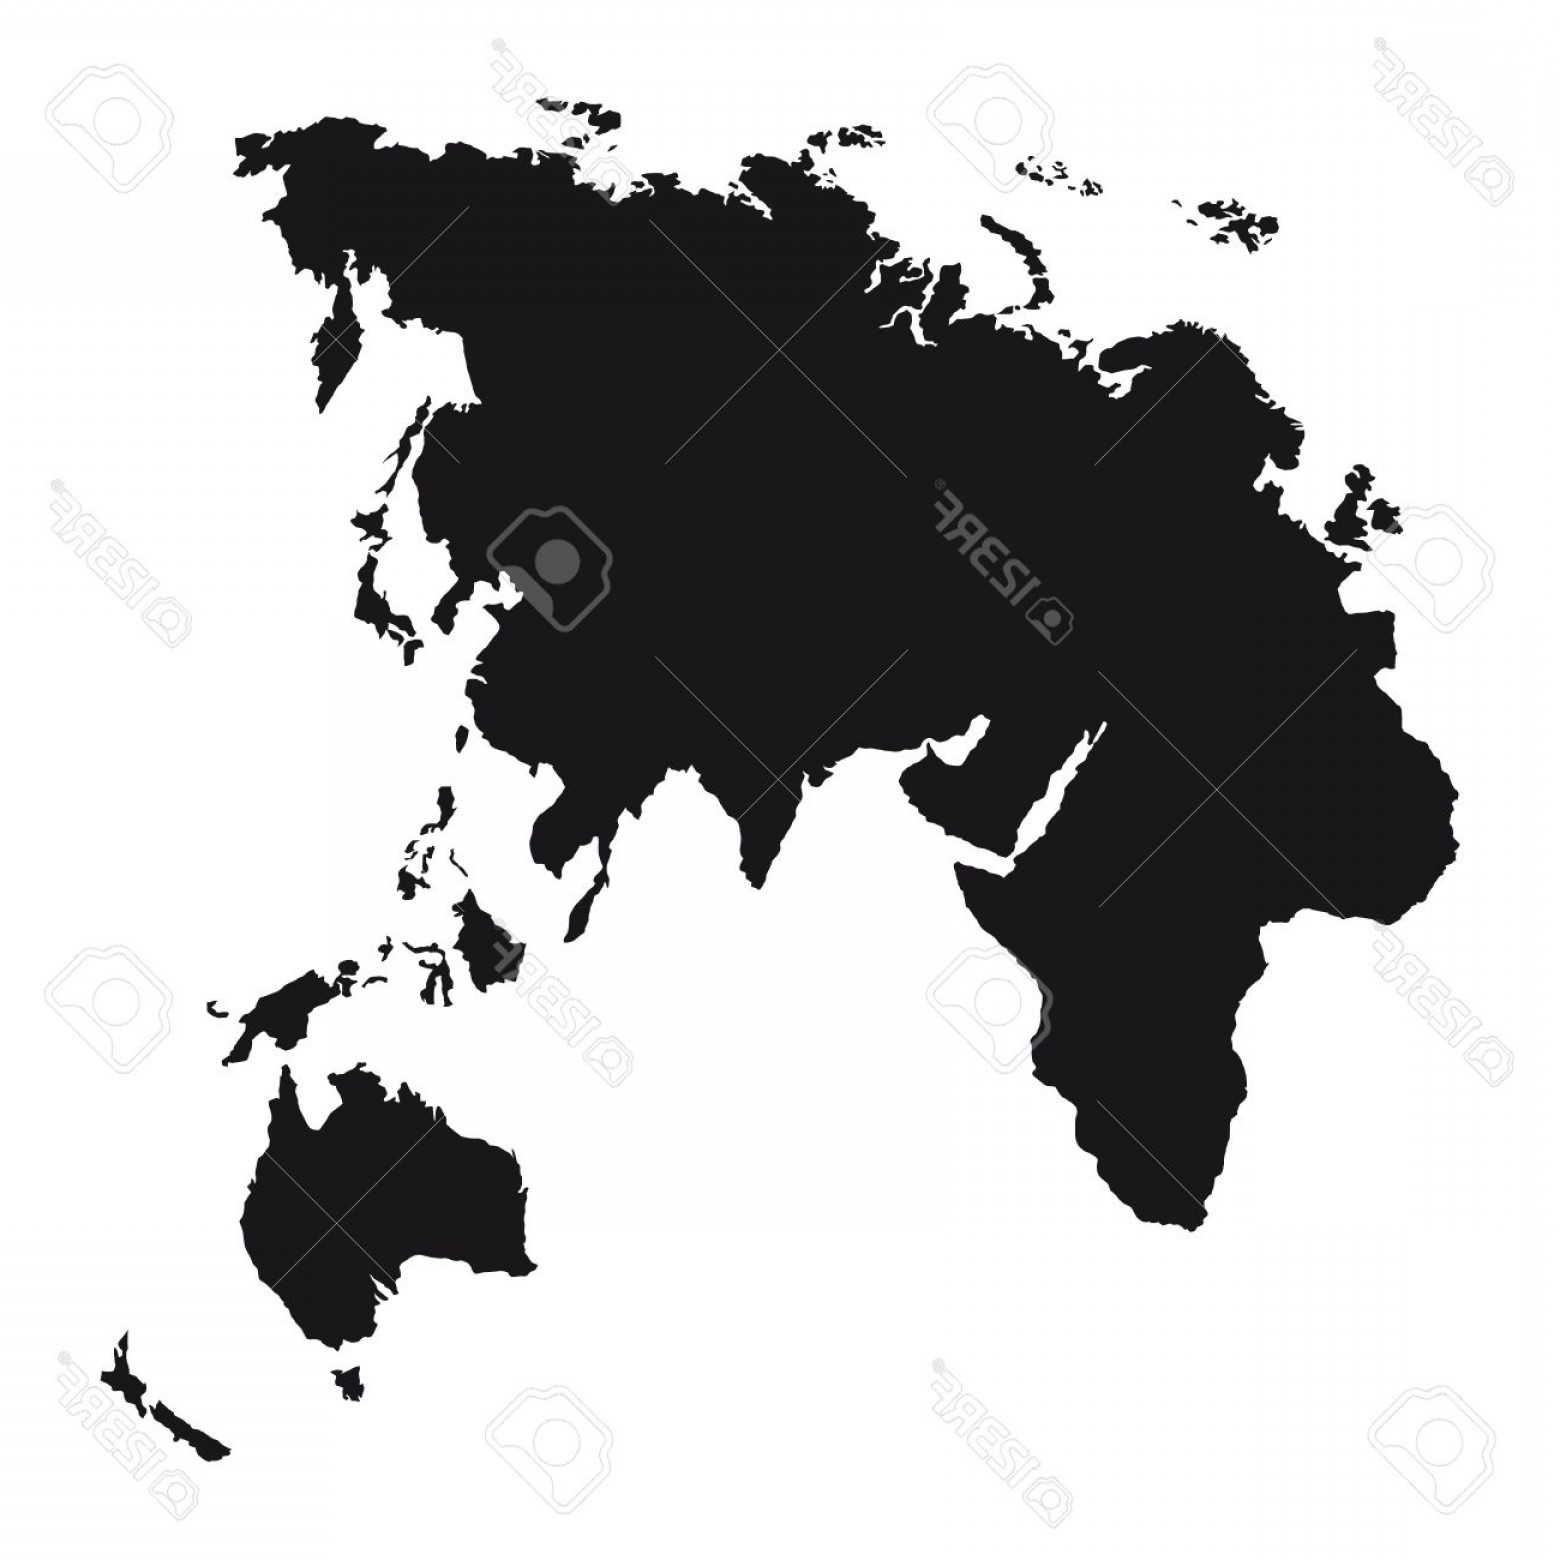 1560x1560 Photoblack Silhouette Europe Asia Africa And Oceania Continents